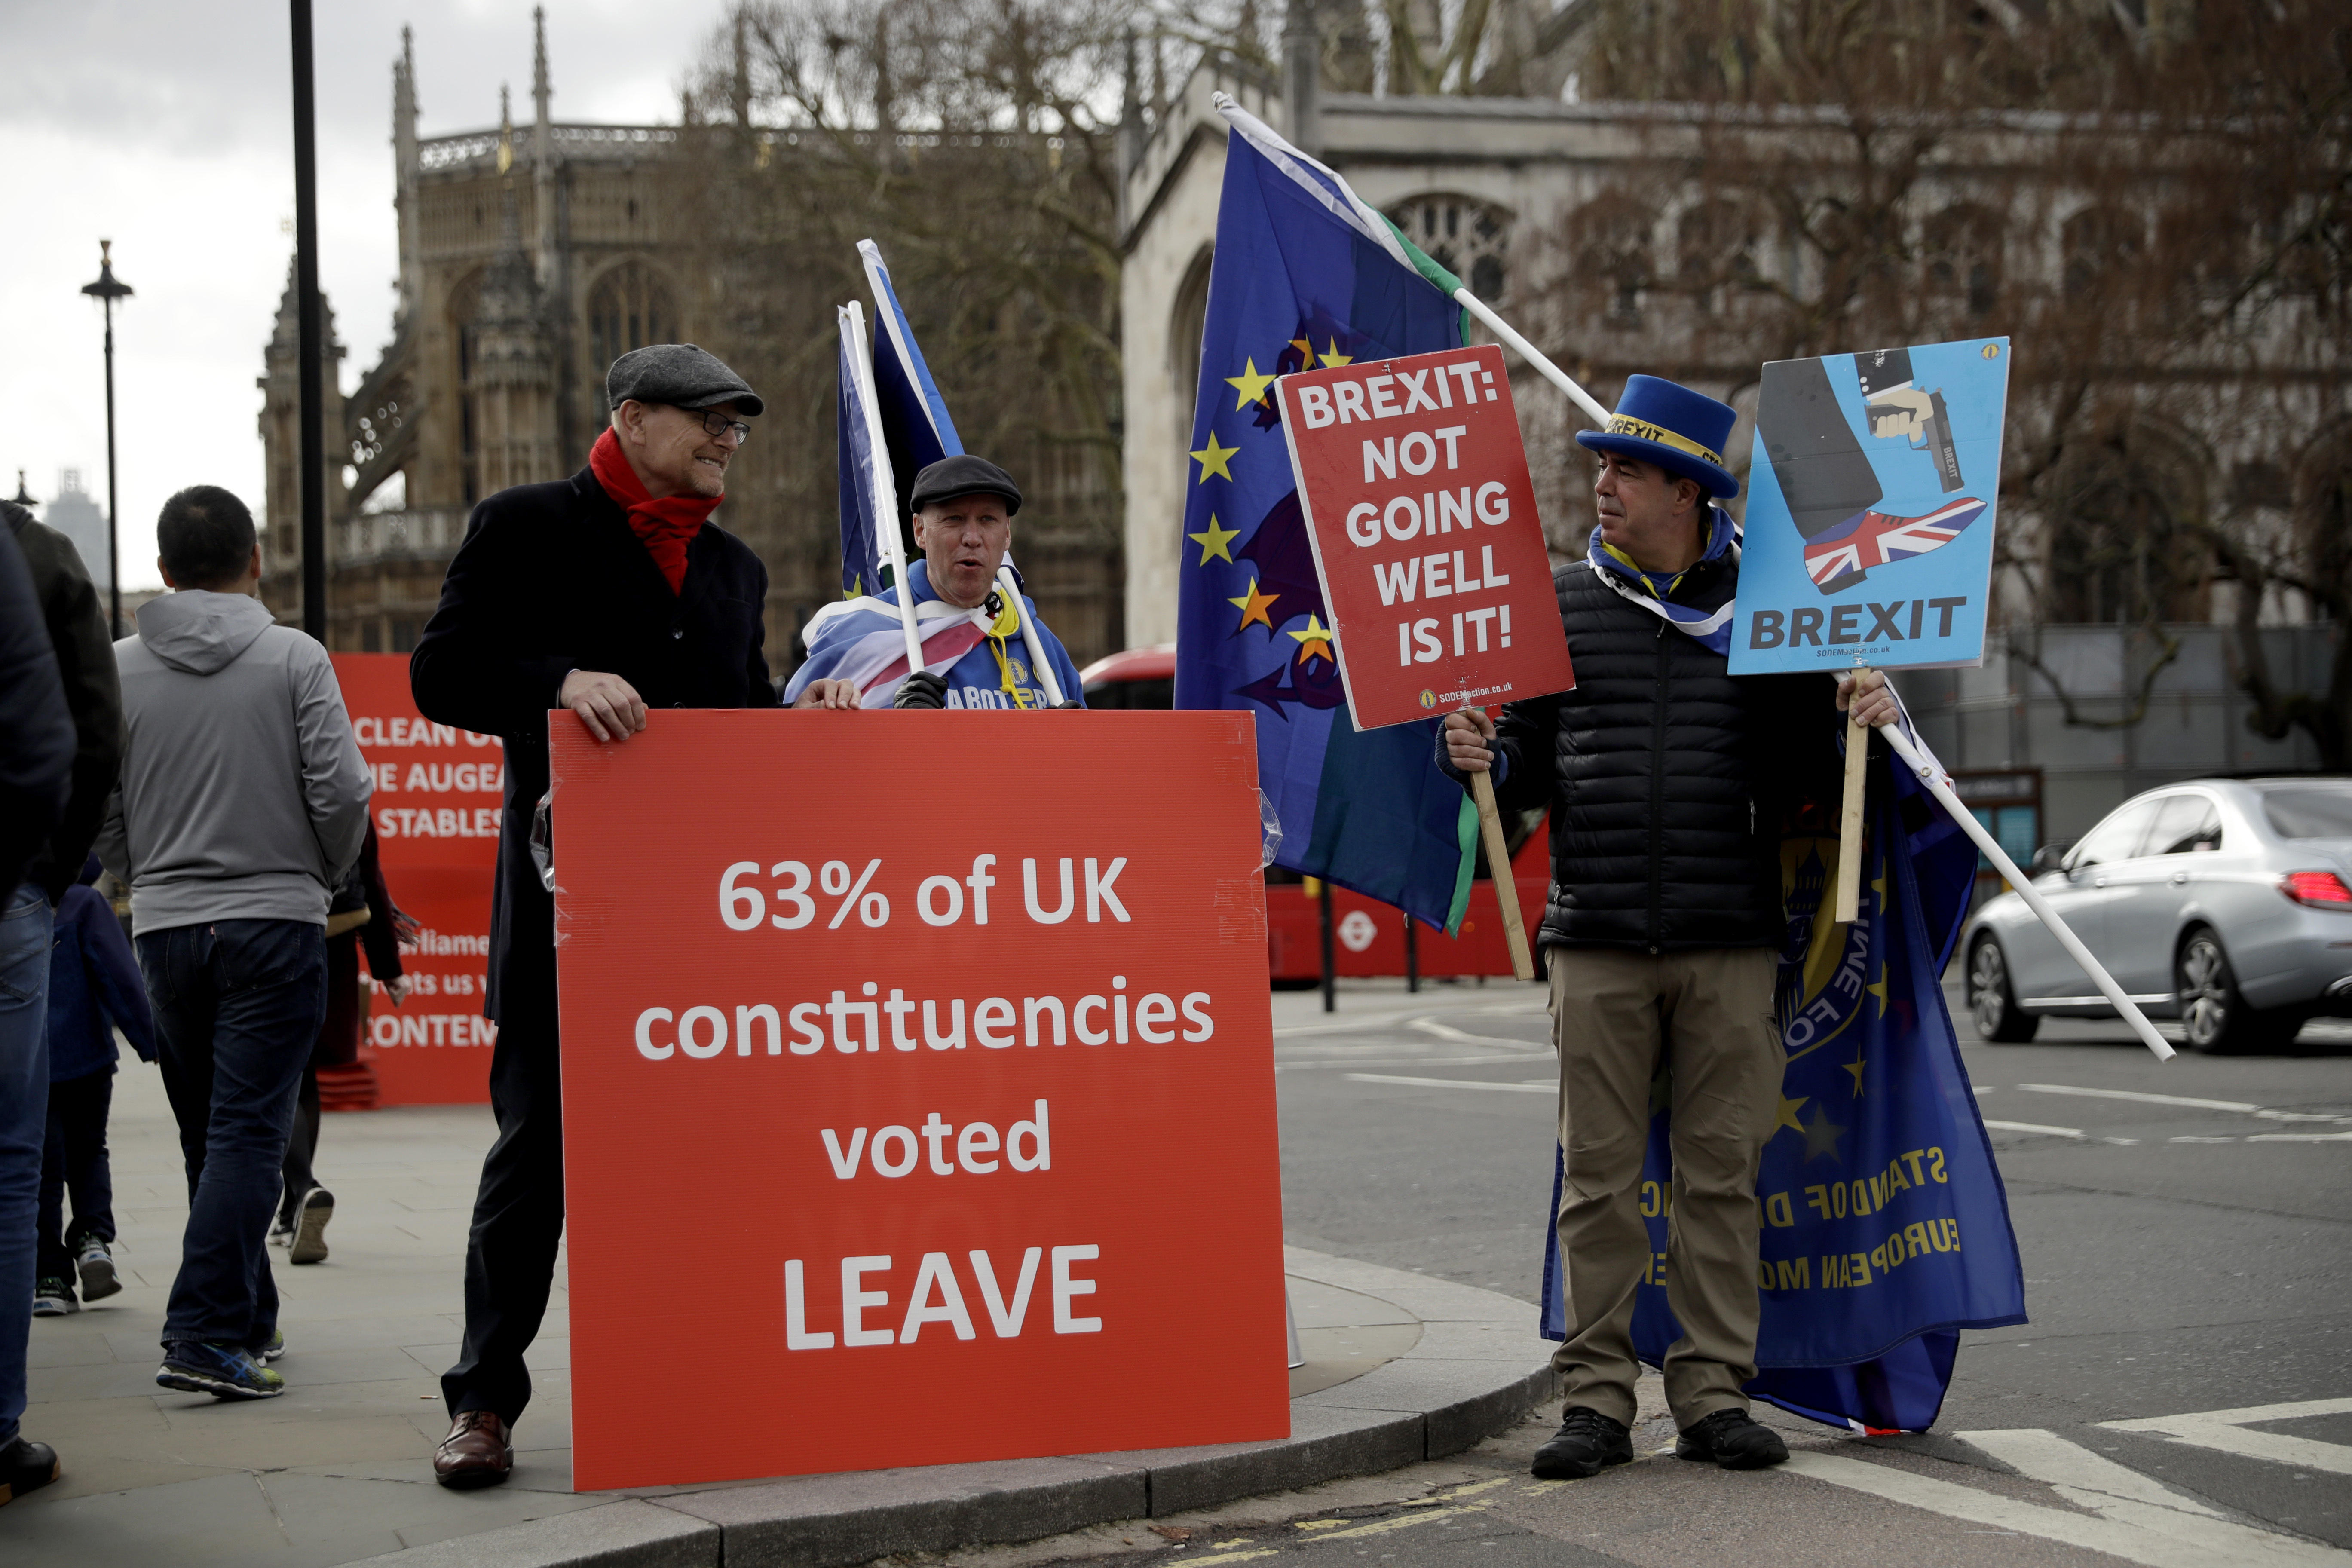 A pro-Brexit supporter, at left, protests next to anti-Brexit supporters protesting outside the Houses of Parliament in London, Monday, March 18, 2019. British Prime Minister Theresa May was making a last-minute push Monday to win support for her European Union divorce deal, warning opponents that failure to approve it would mean a long — and possibly indefinite — delay to Brexit. Parliament has rejected the agreement twice, but May aims to try a third time this week if she can persuade enough lawmakers to change their minds. (AP Photo/Matt Dunham)